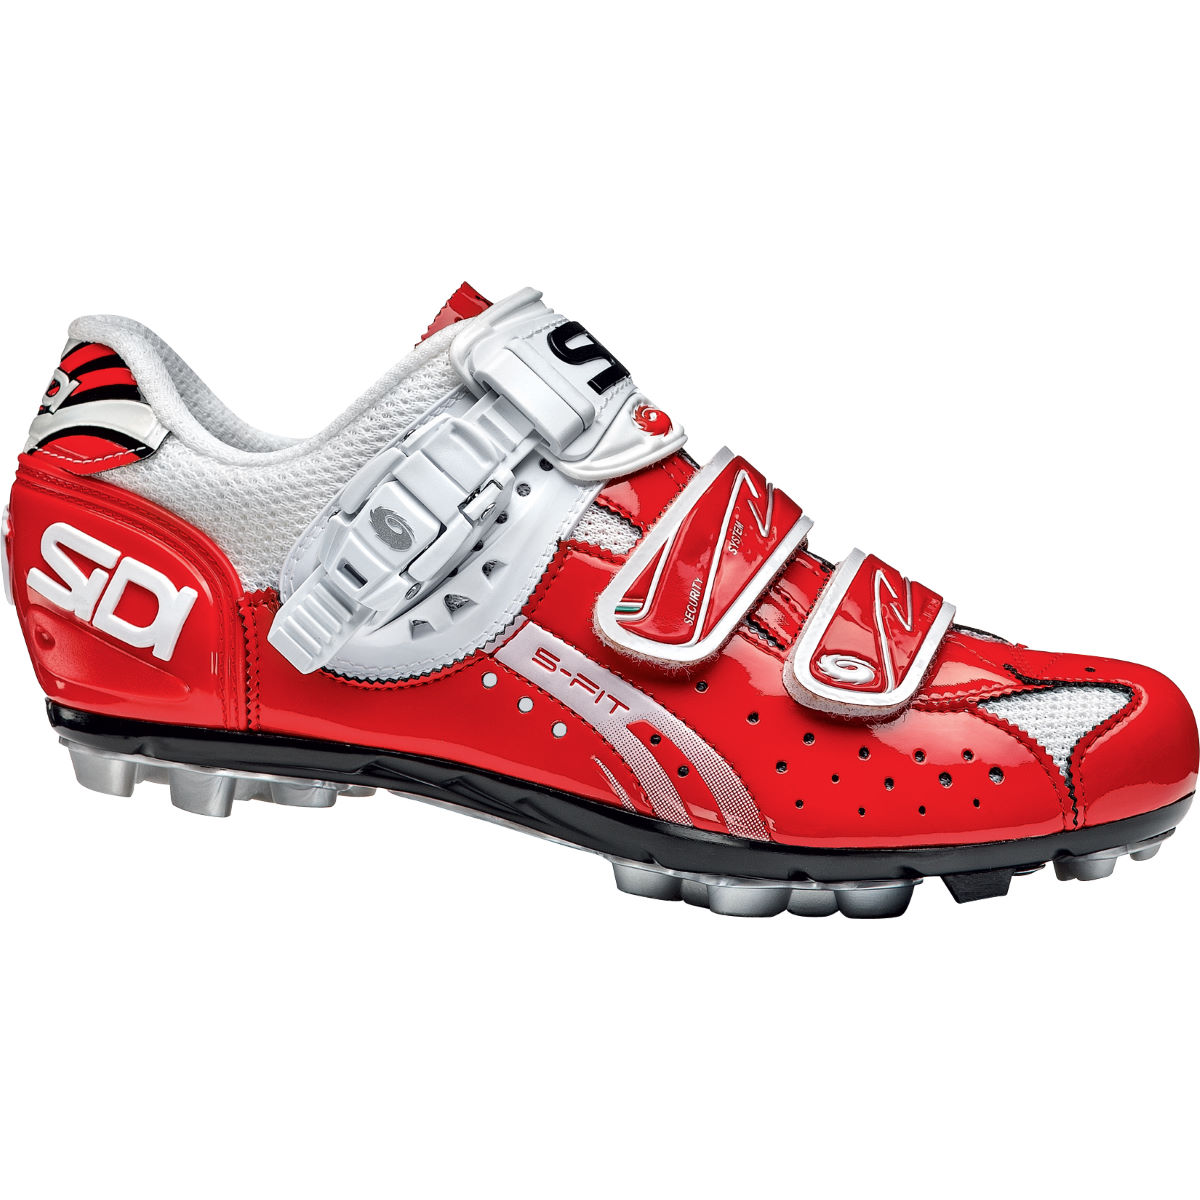 Sidi Women's Eagle 5-Fit MTB Shoe